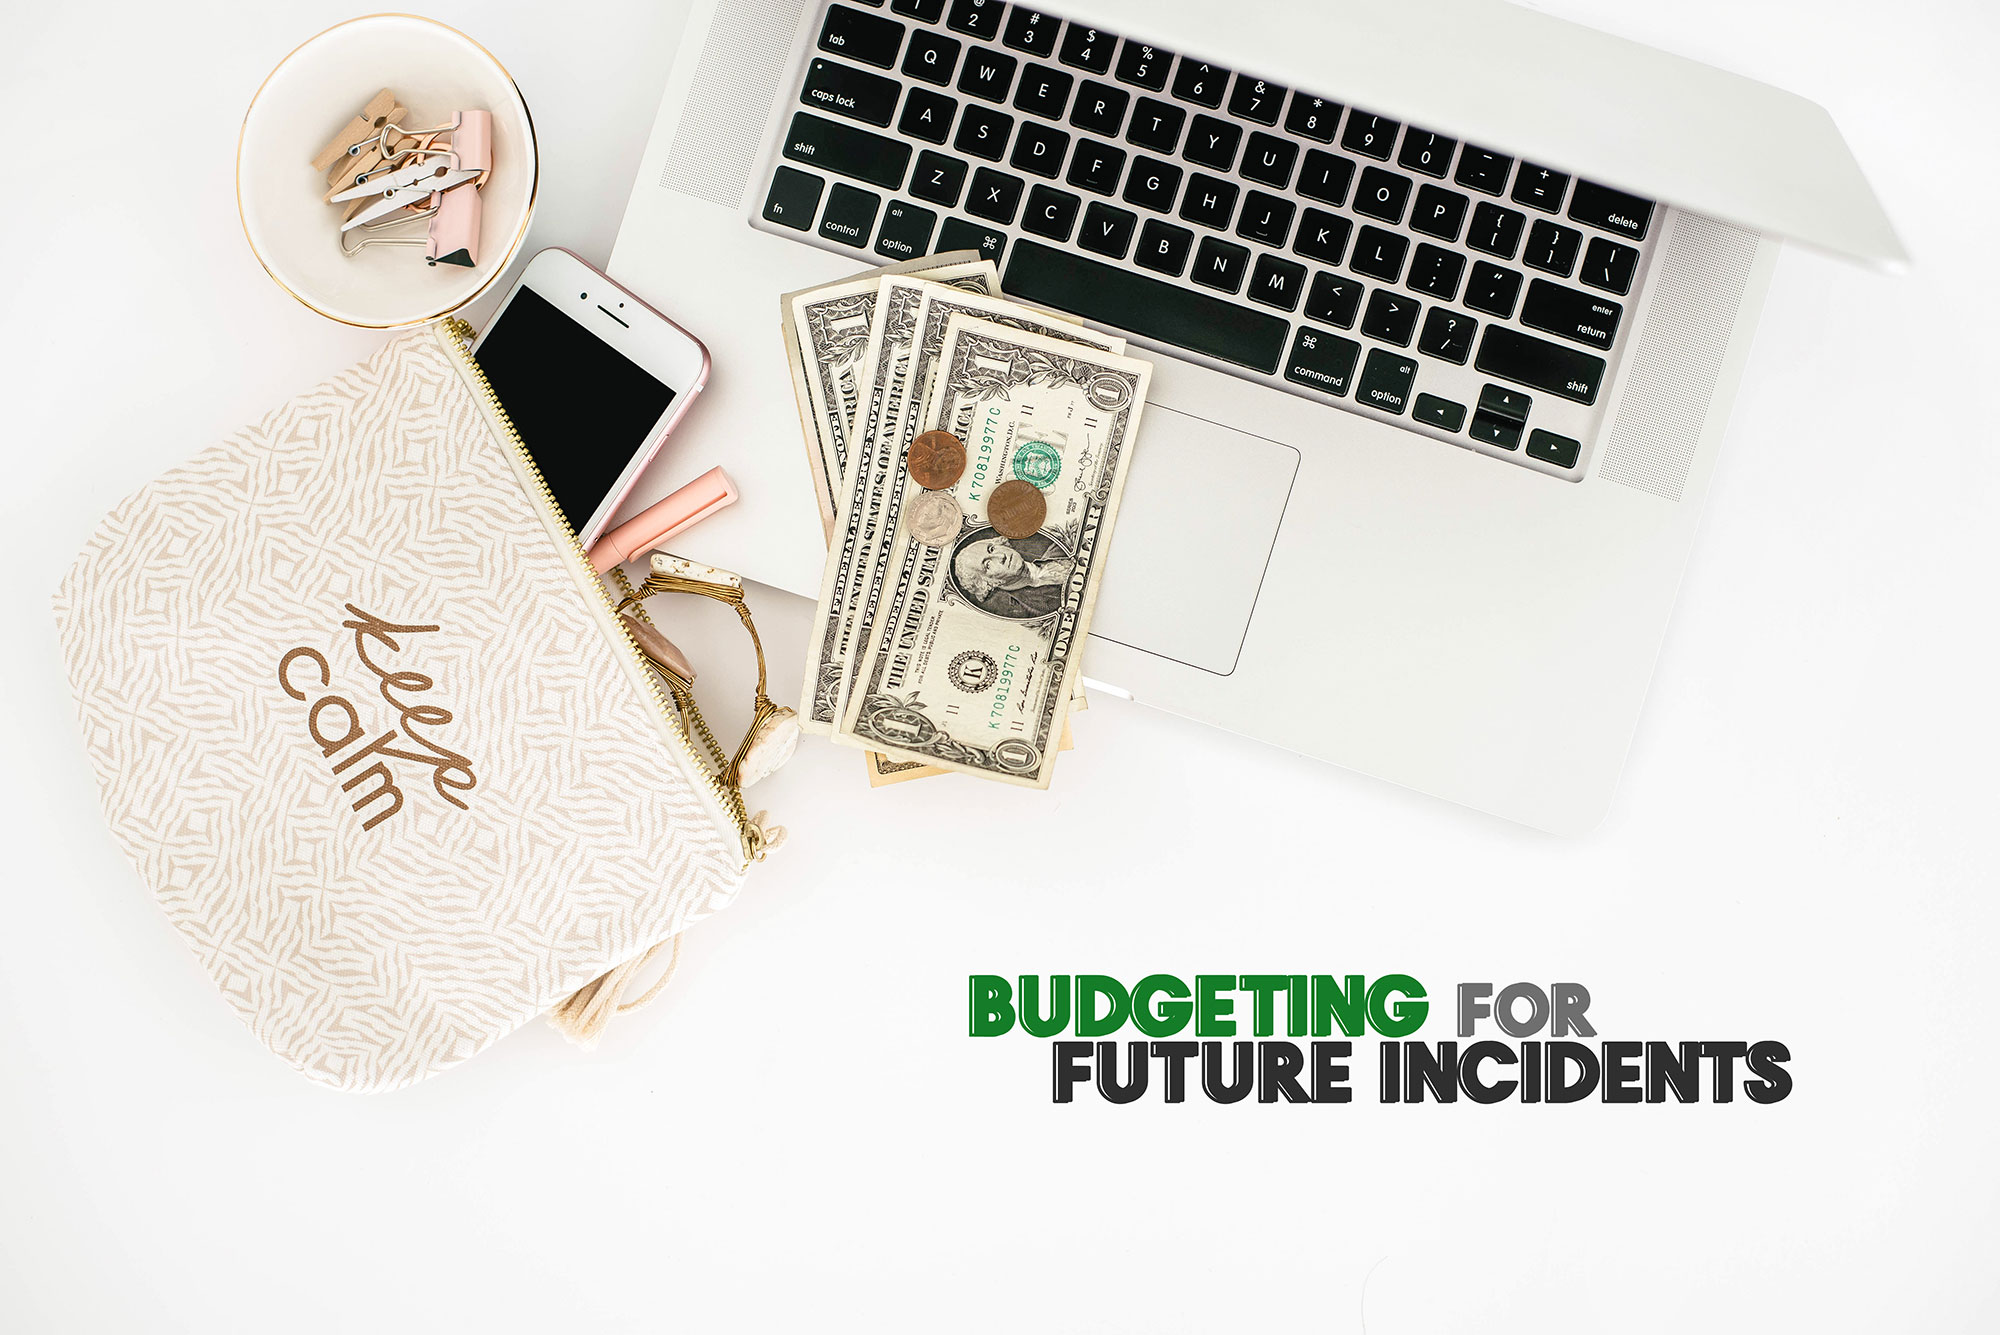 Budgeting For Future Incidents